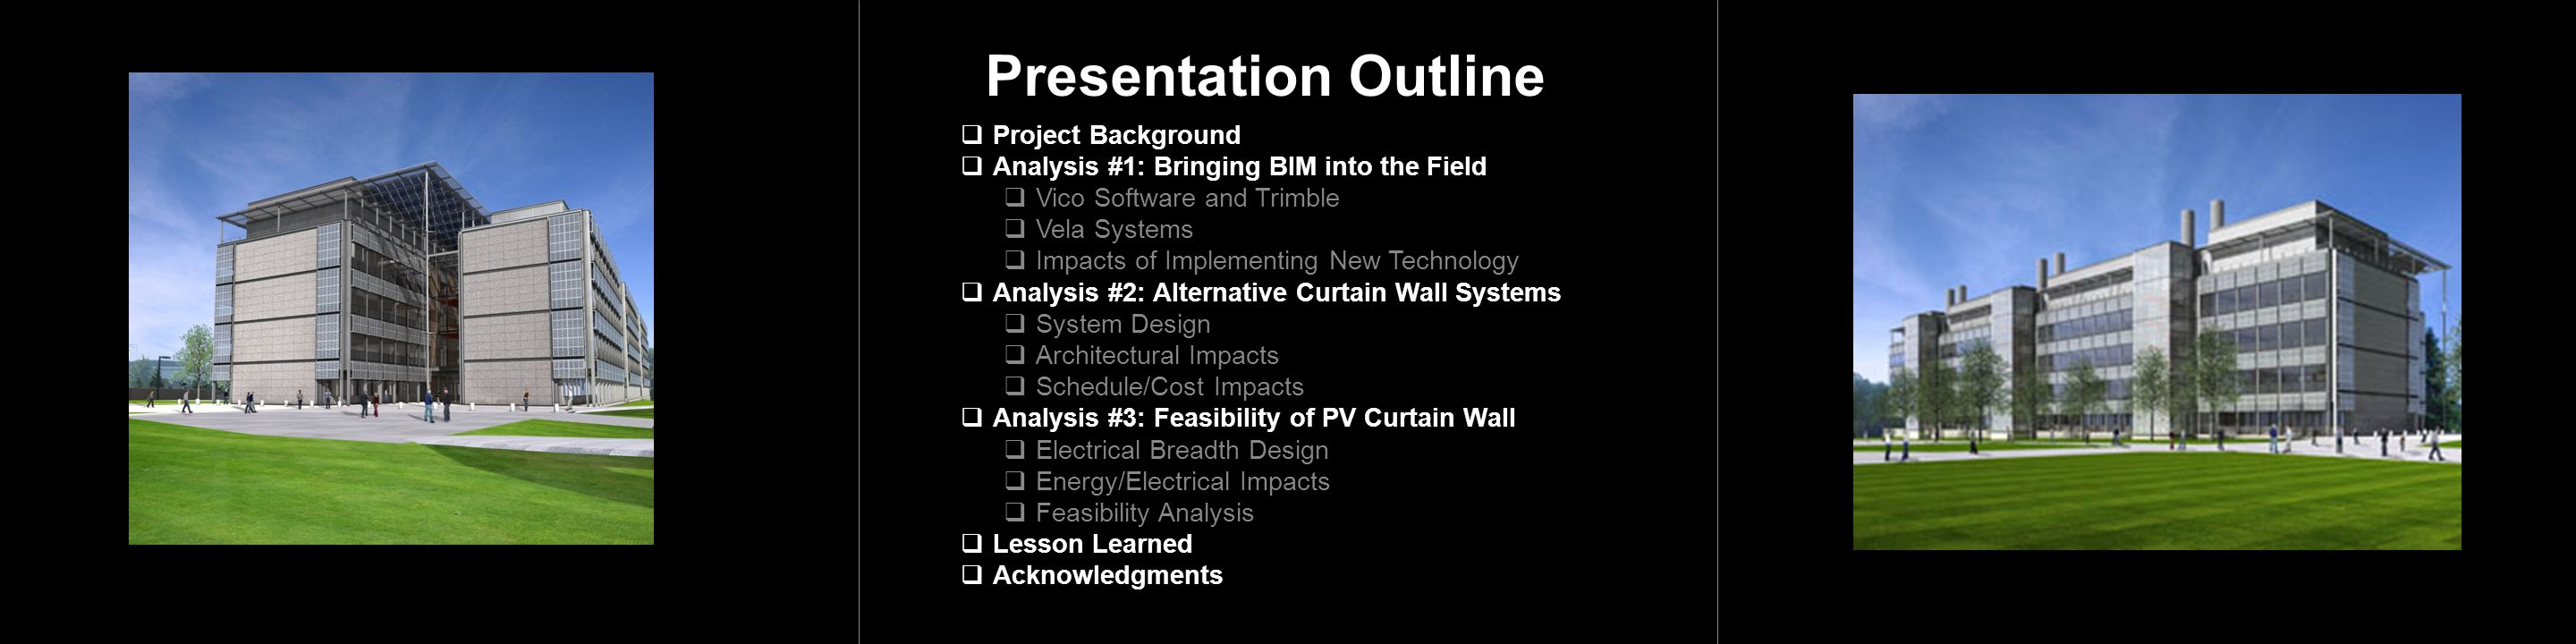 Presentation Outline  Project Background  Analysis #1: Bringing BIM into the Field  Vico Software and Trimble  Vela Systems  Impacts of Implementing New Technology  Analysis #2: Alternative Curtain Wall Systems  System Design  Architectural Impacts  Schedule/Cost Impacts  Analysis #3: Feasibility of PV Curtain Wall  Electrical Breadth Design  Energy/Electrical Impacts  Feasibility Analysis  Lesson Learned  Acknowledgments